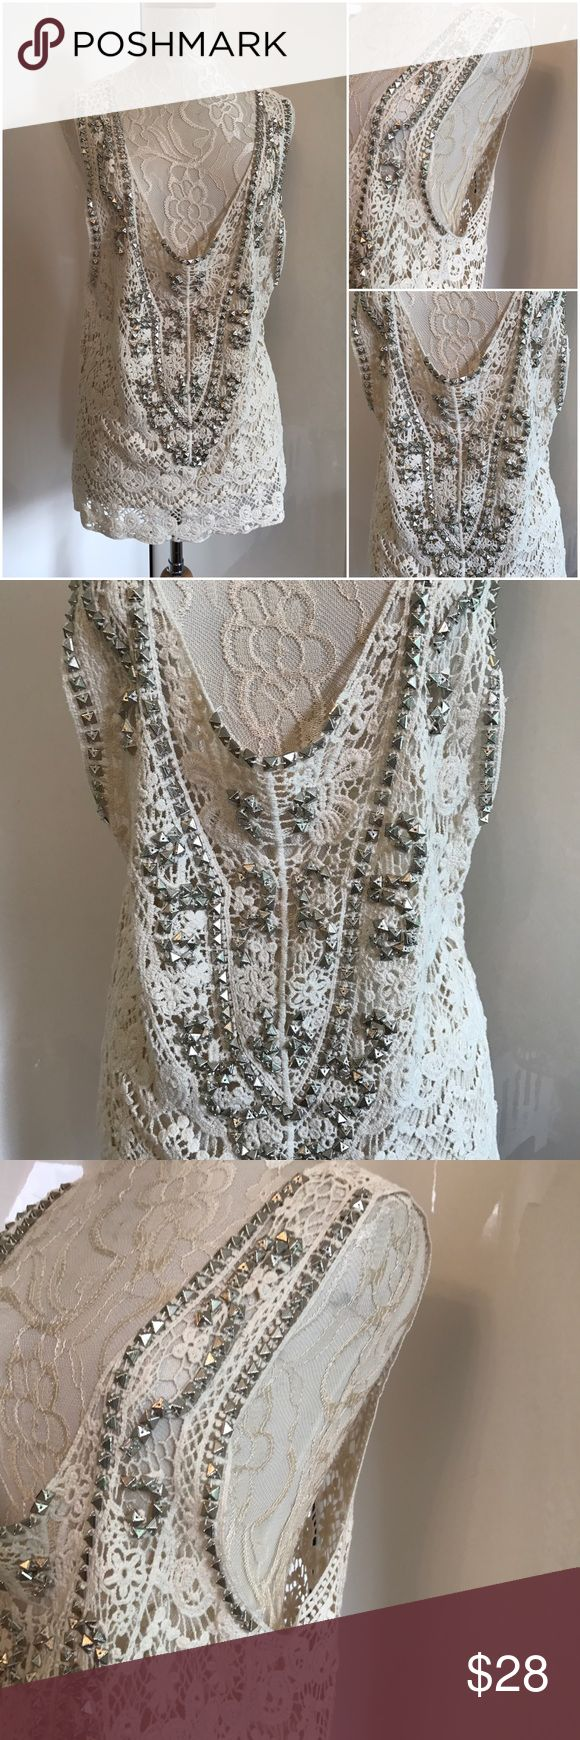 NWOT Lace Tunic Top Oversized sz L Longer style Lace top with details. Oversized style. Will look great over a tank top or over a swimsuit. It's off white in color. New without tags. Size Large. Tops